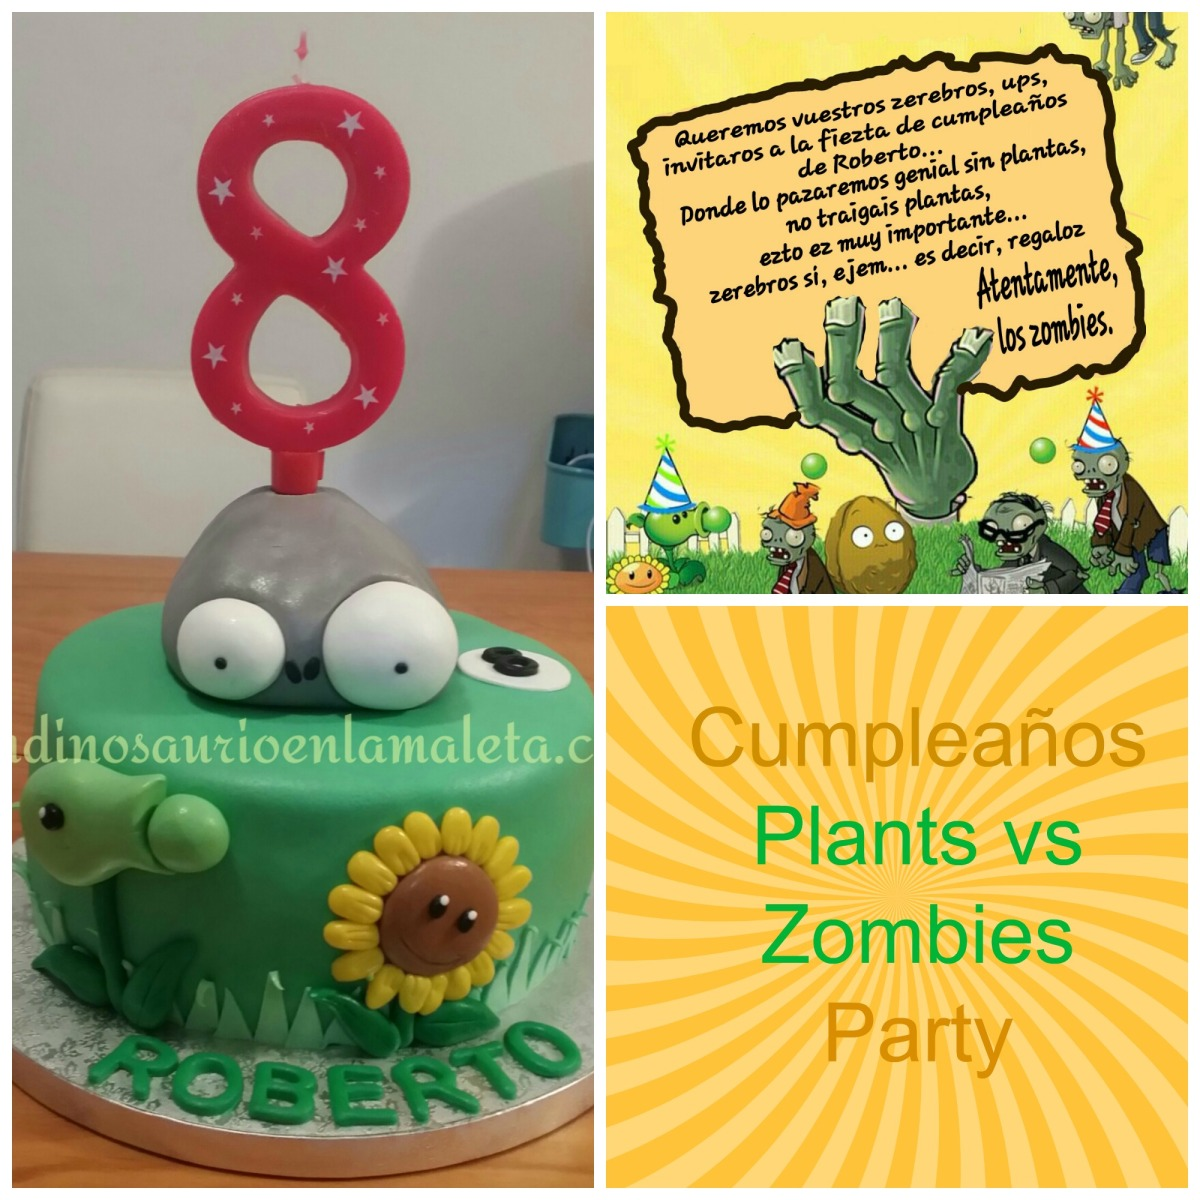 Cumpleaños Plantas contra Zombies/ Plants vs Zombies Party